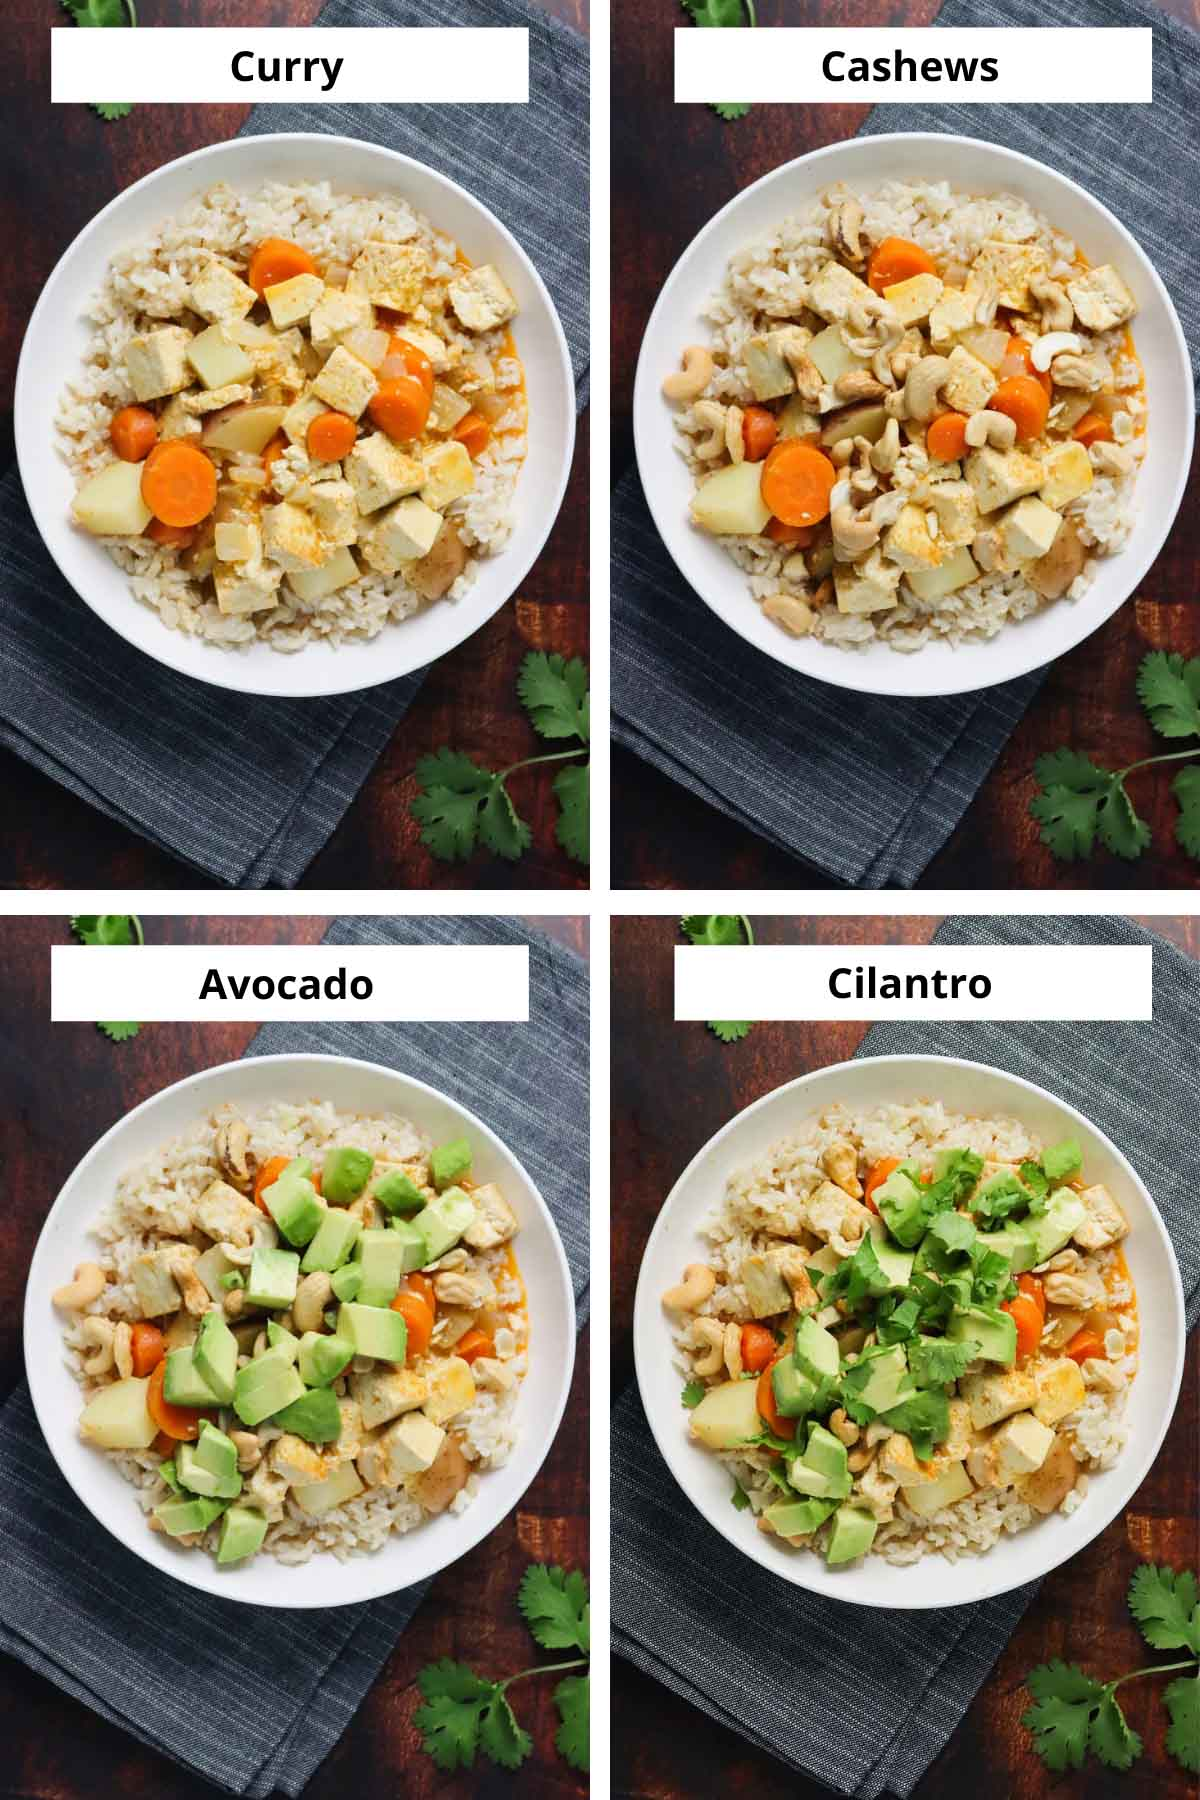 image collage showing the tofu curry and adding the toppings, one by one